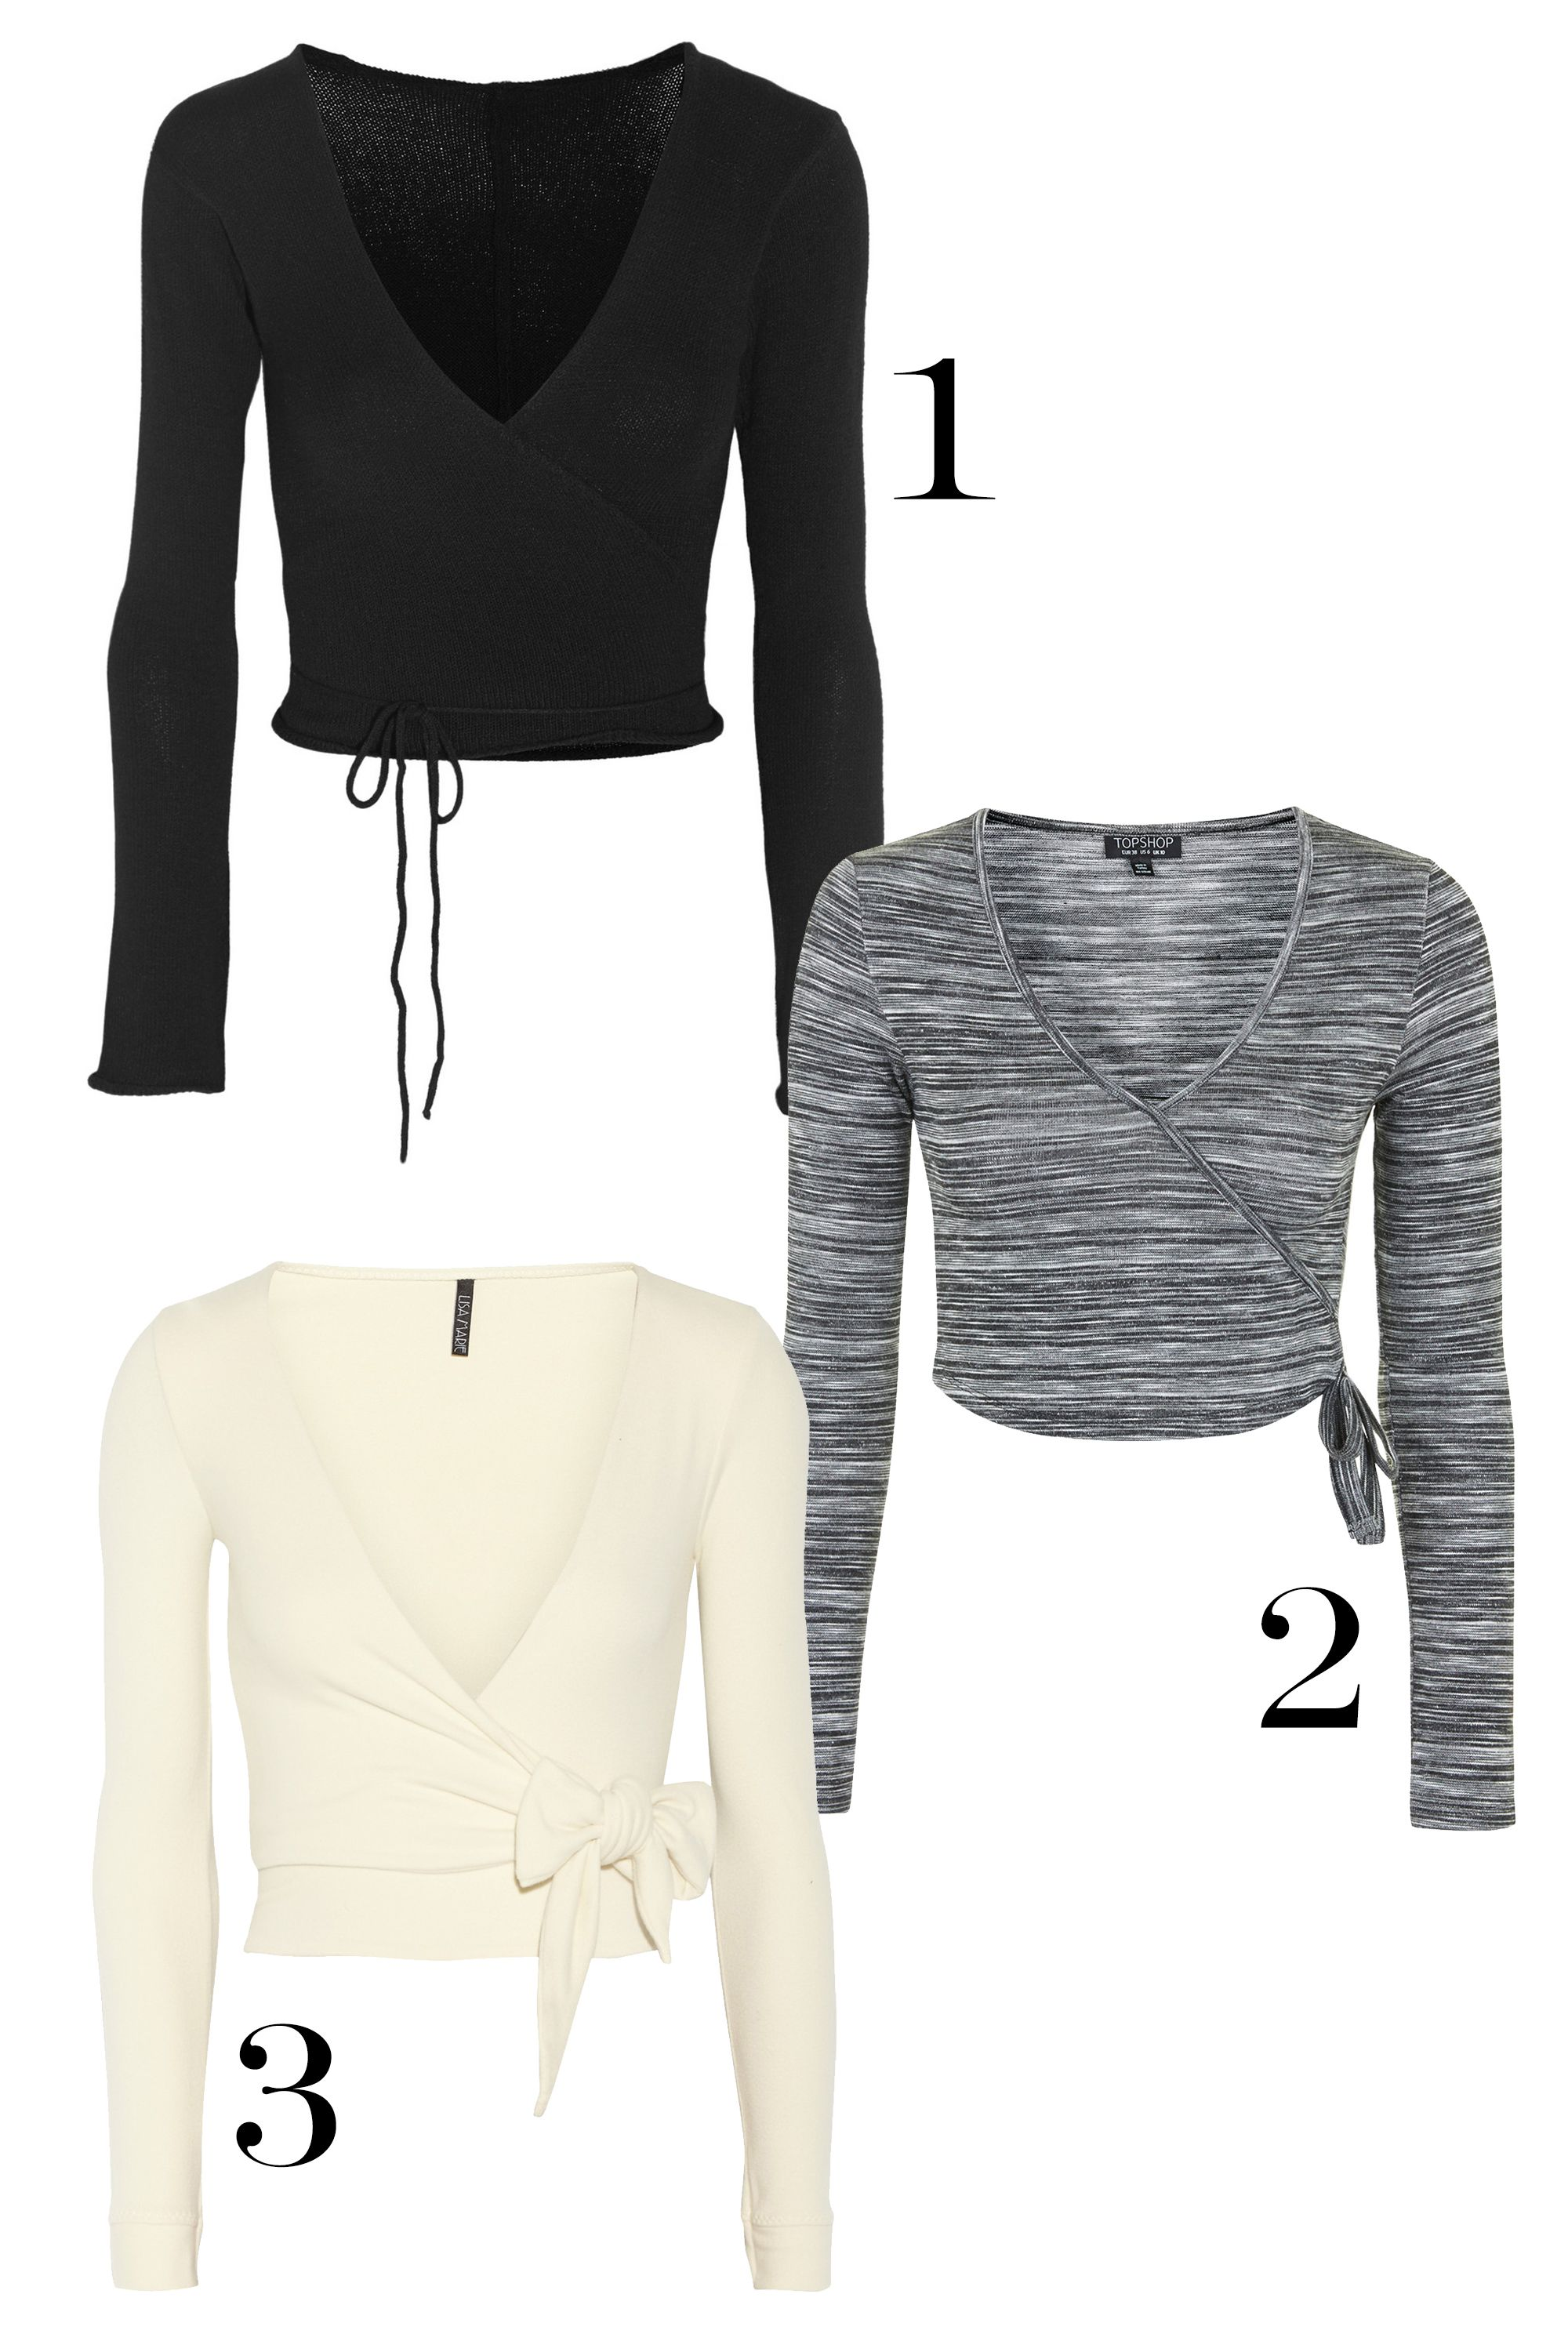 How to Look Like a Ballerina: 6 Wardrobe Staples to Steal for Your ...